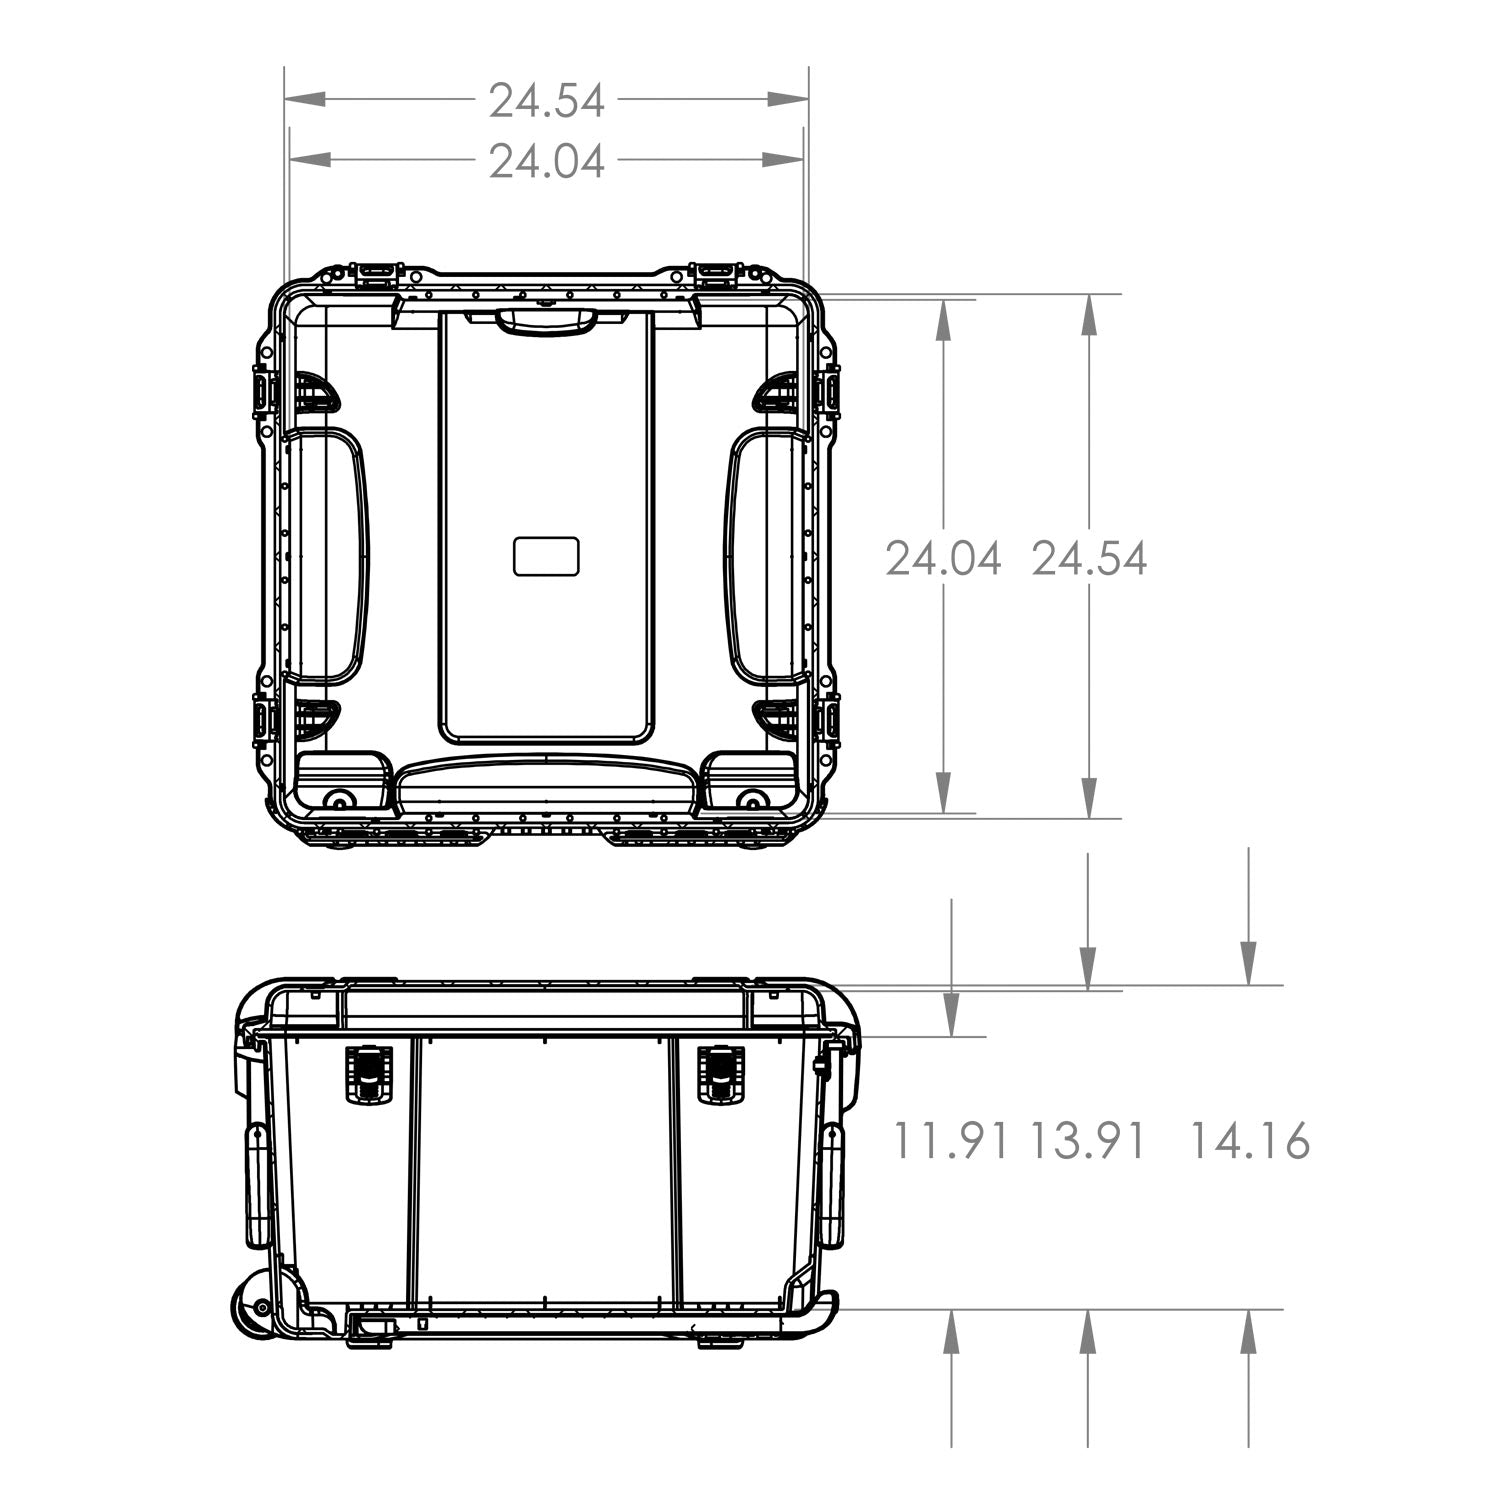 NANUK 970 Hard Case Specifications Dimensions